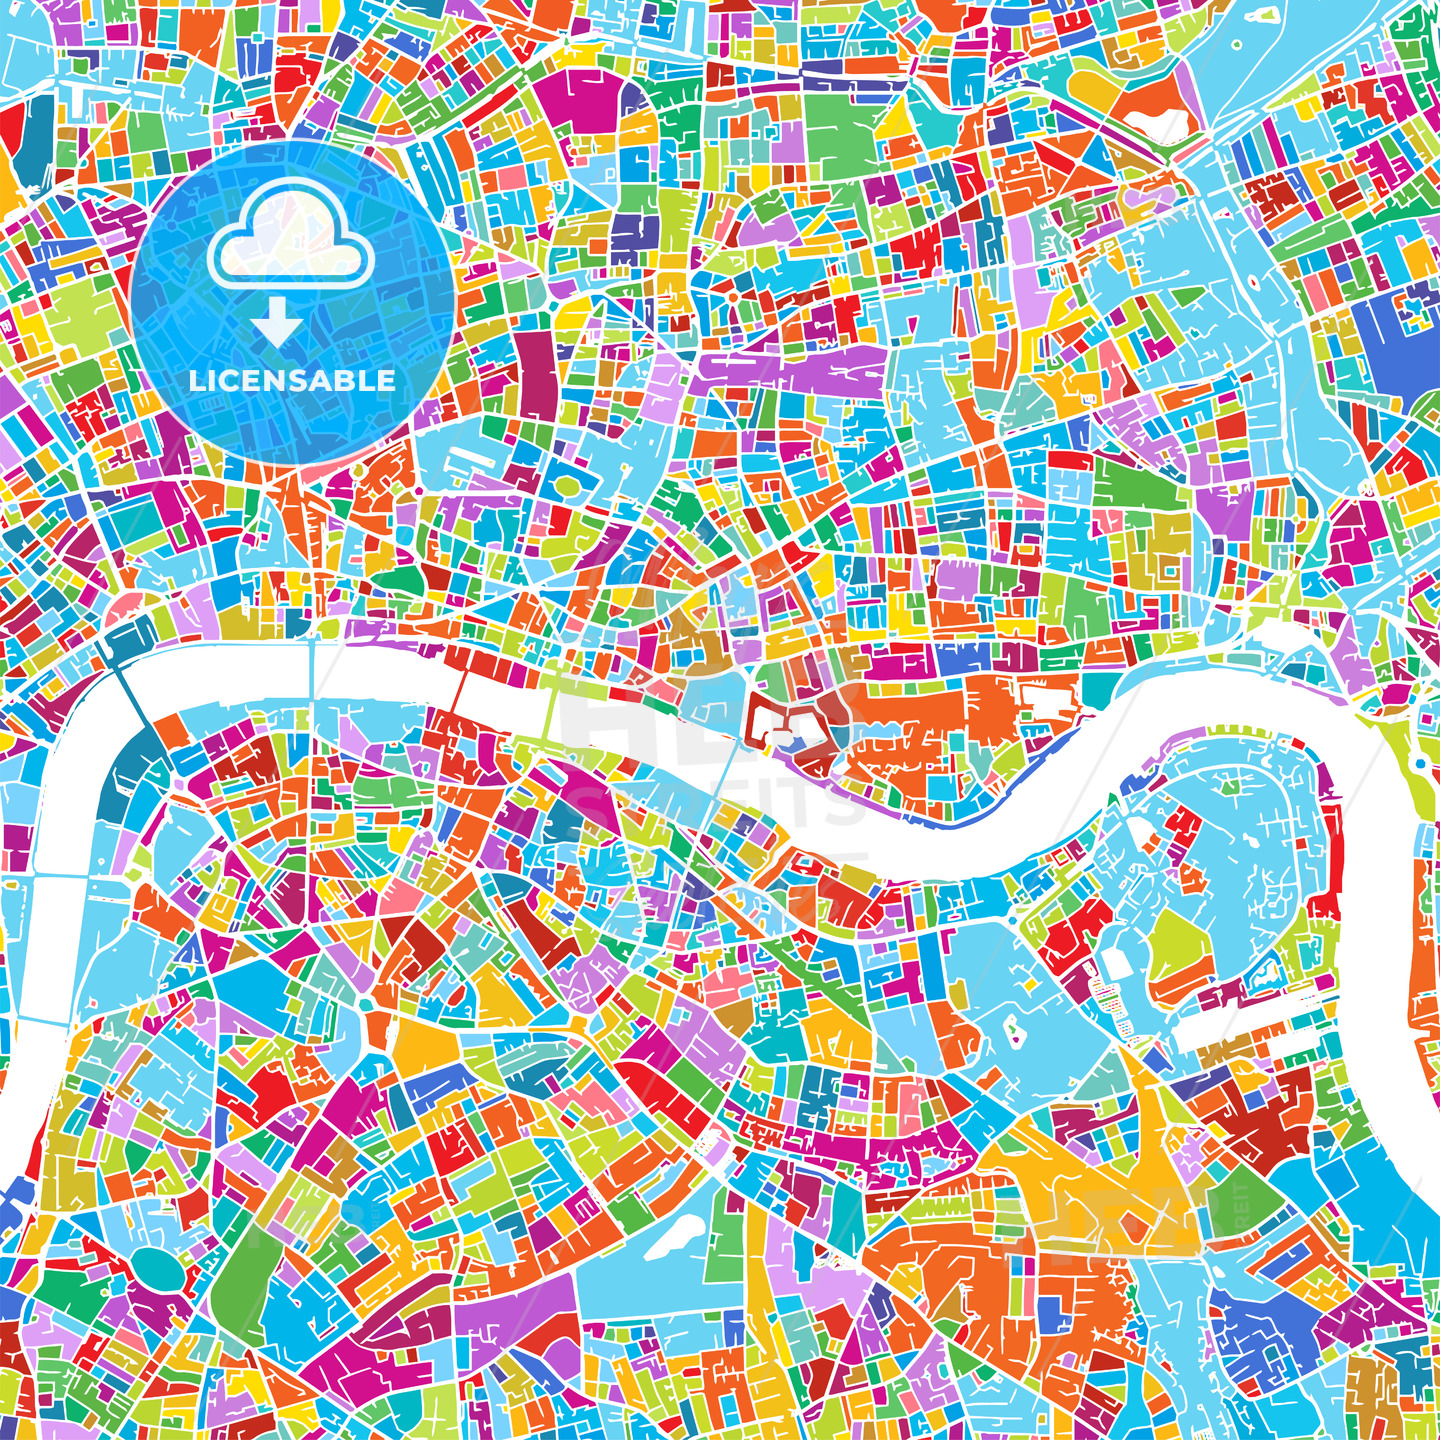 London Colorful Vector Map - HEBSTREIT's Sketches